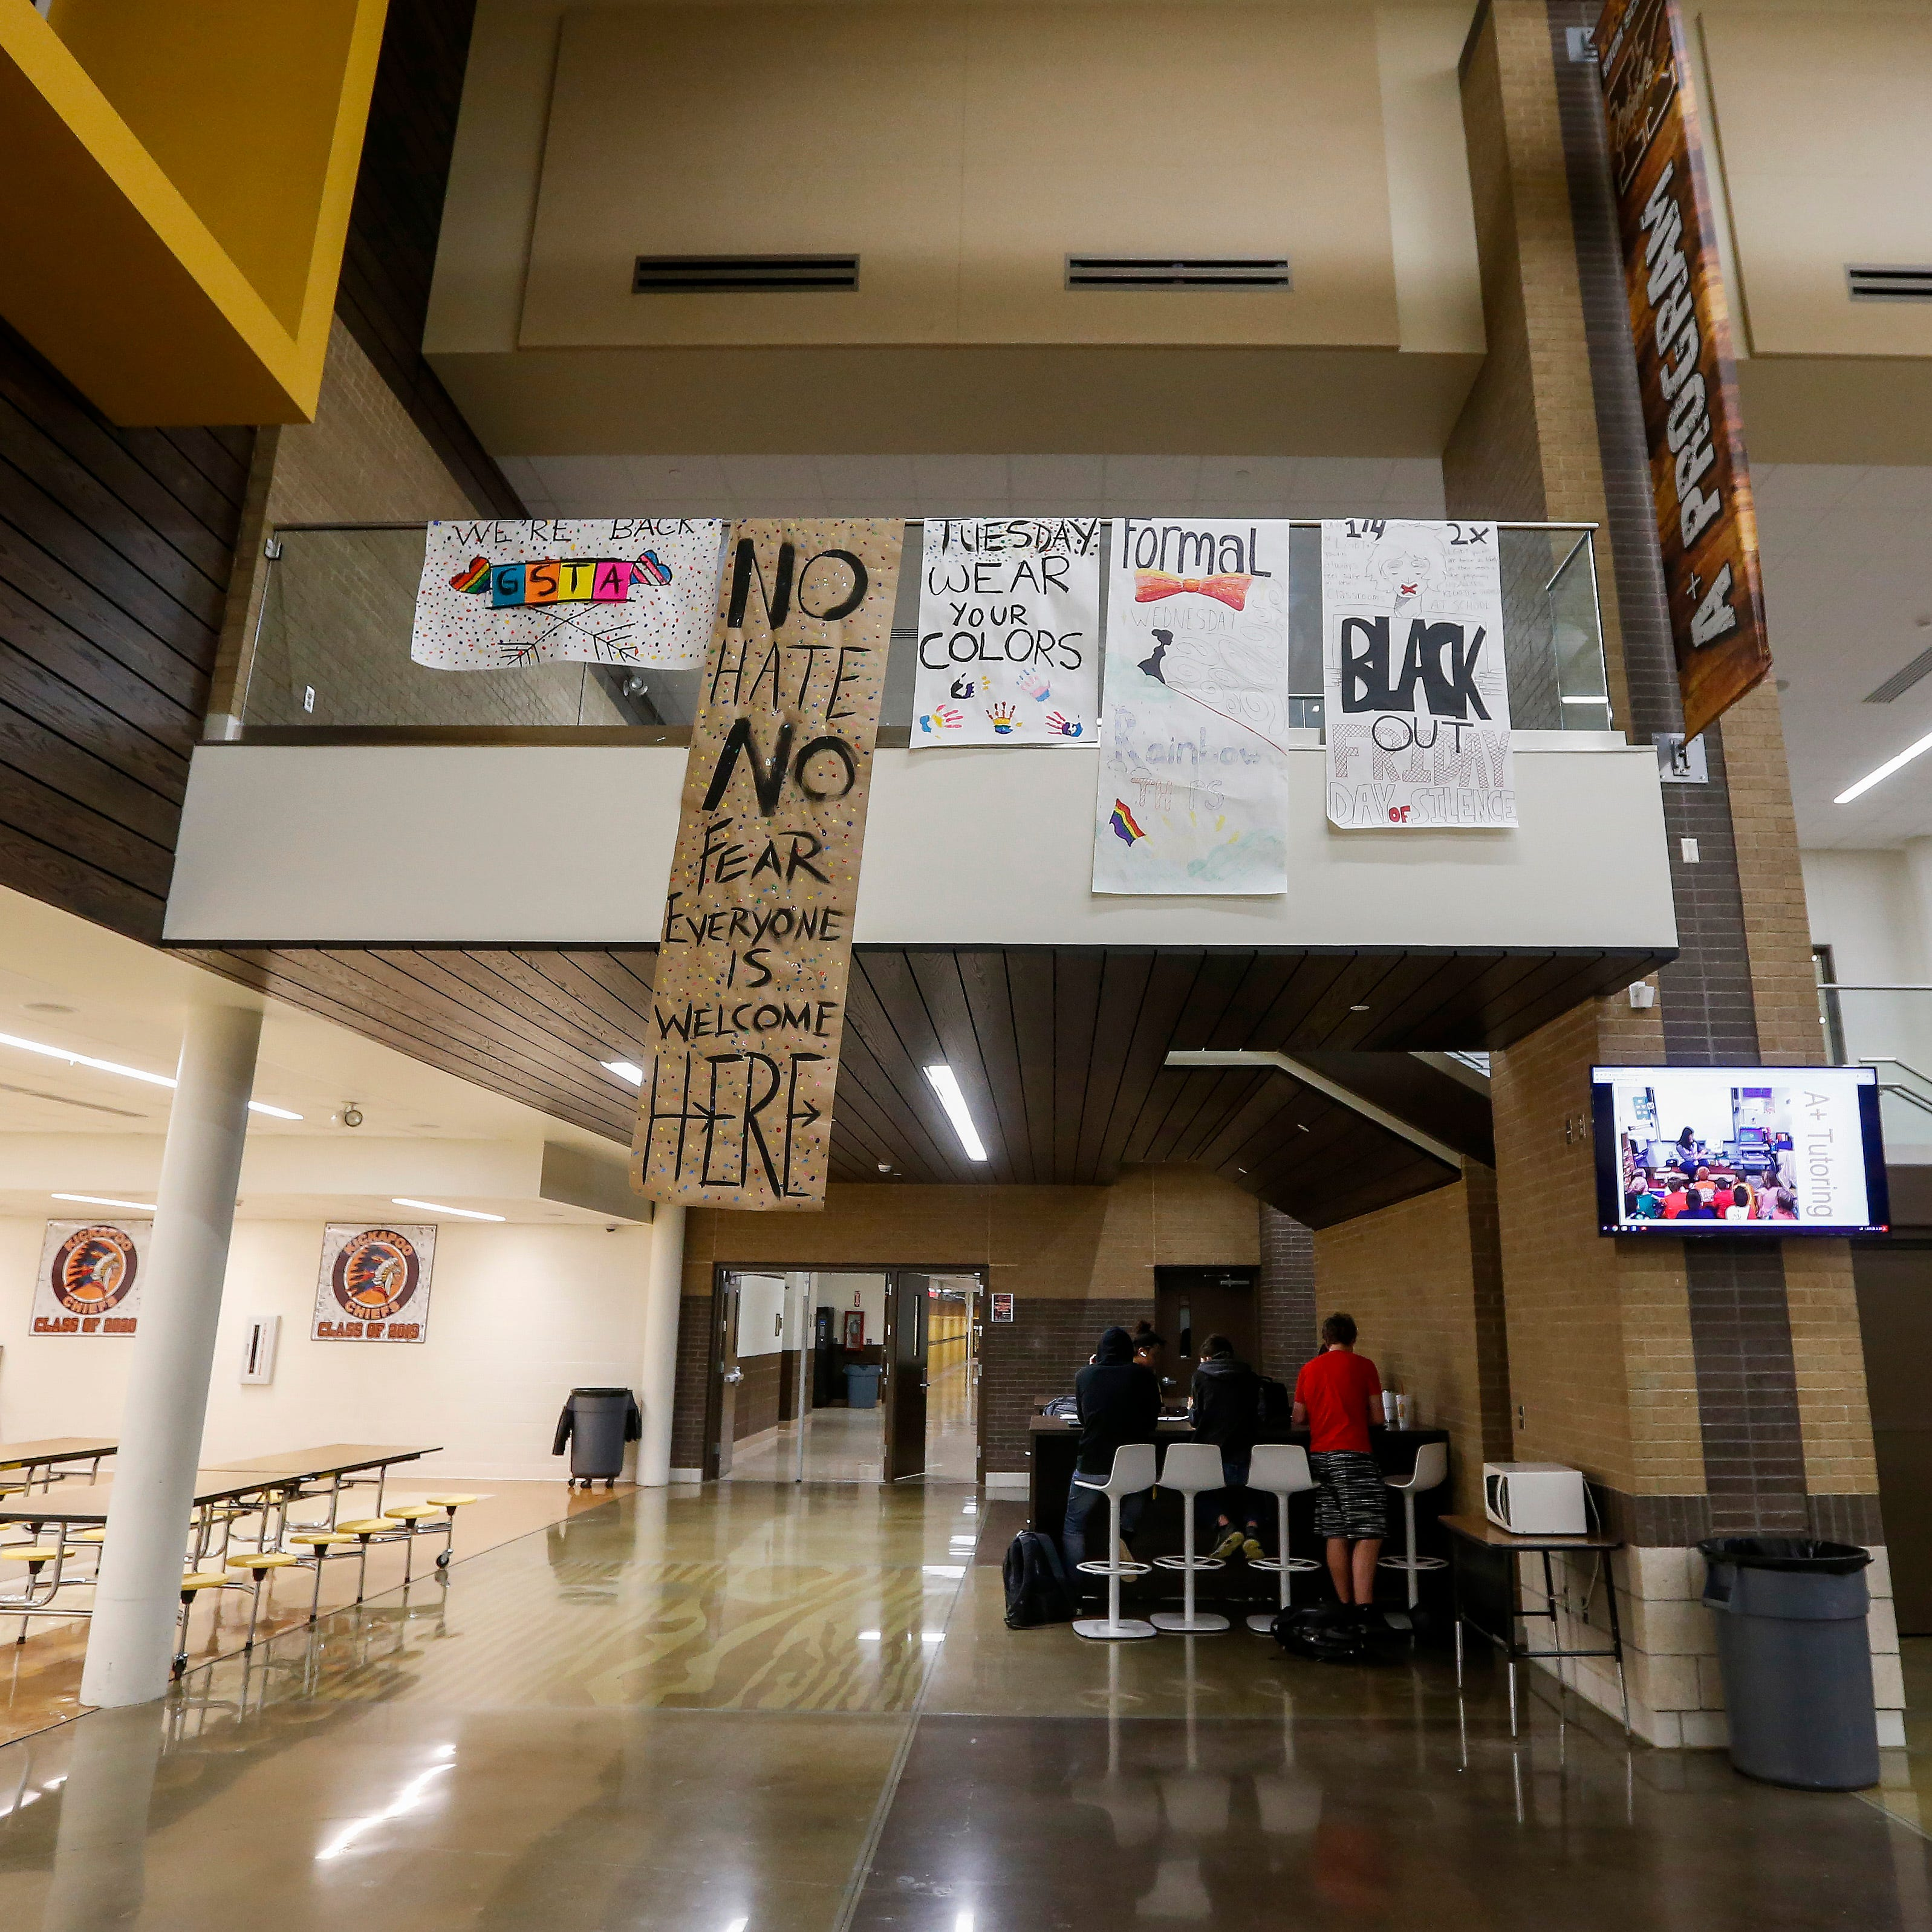 Second LGBT poster ripped off wall at Kickapoo High School